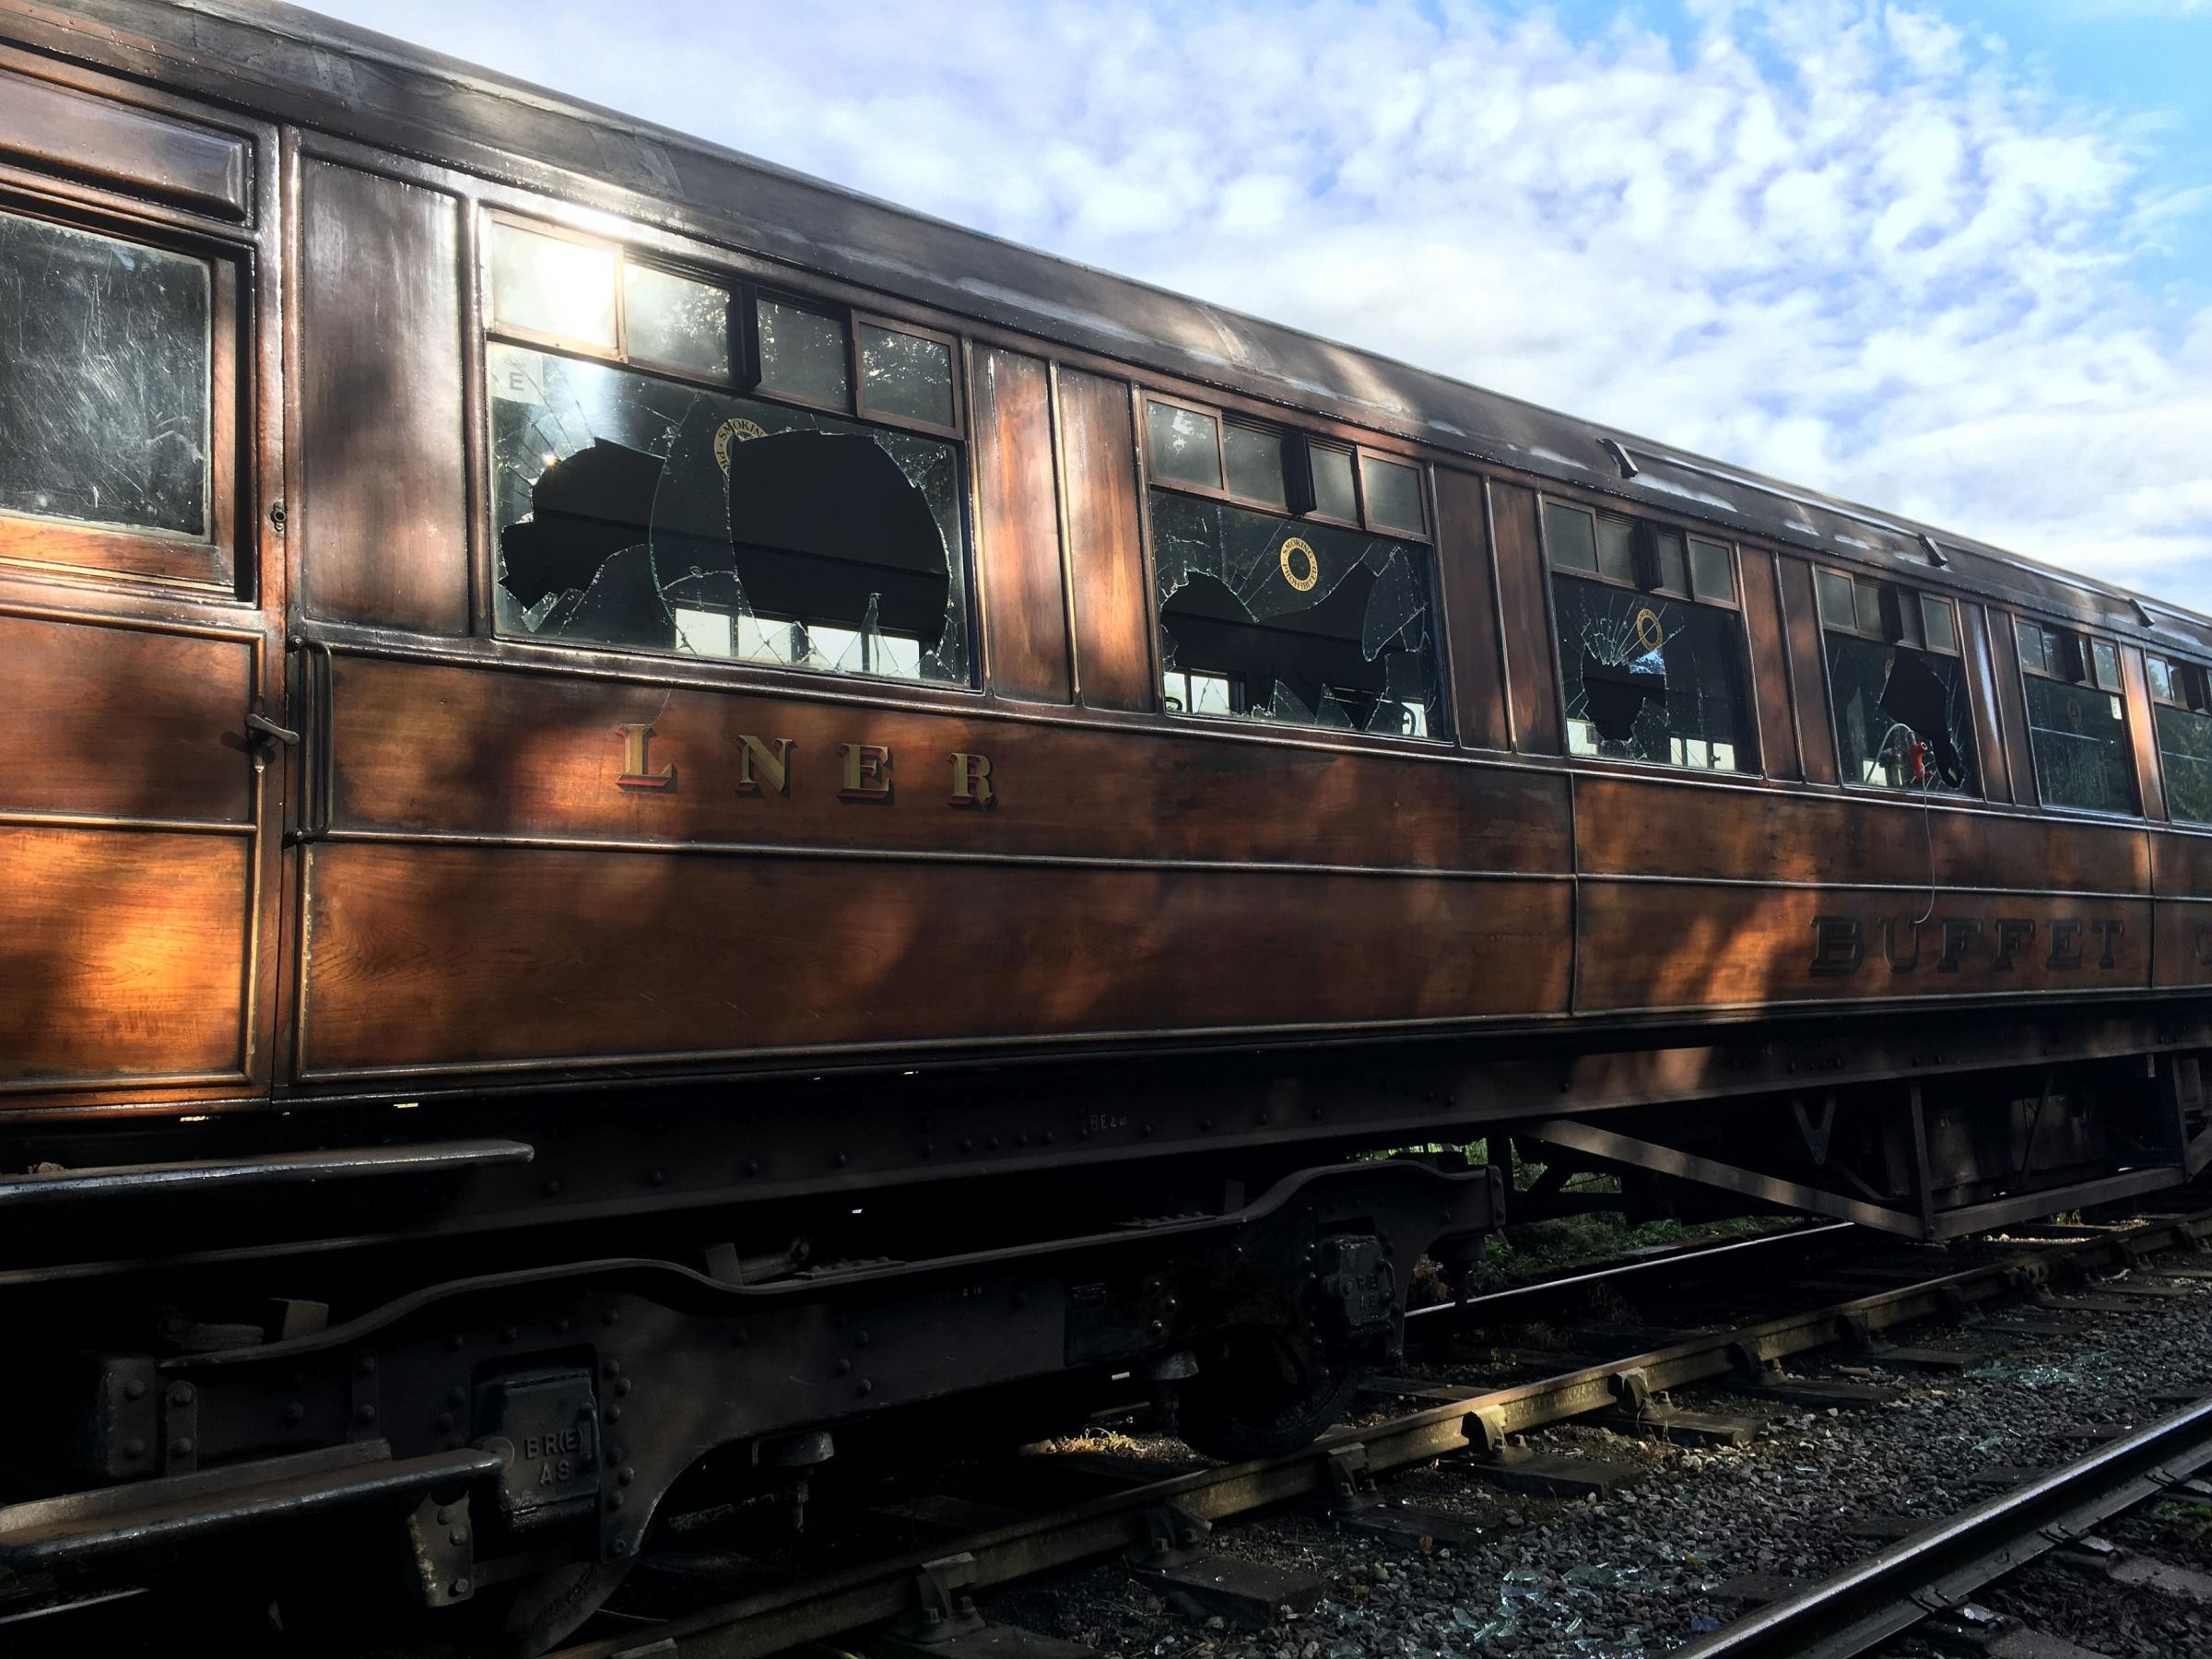 'STUPID': One of a set of antique train carriages that were vandalised. Picture: North Yorkshire Moors Railway